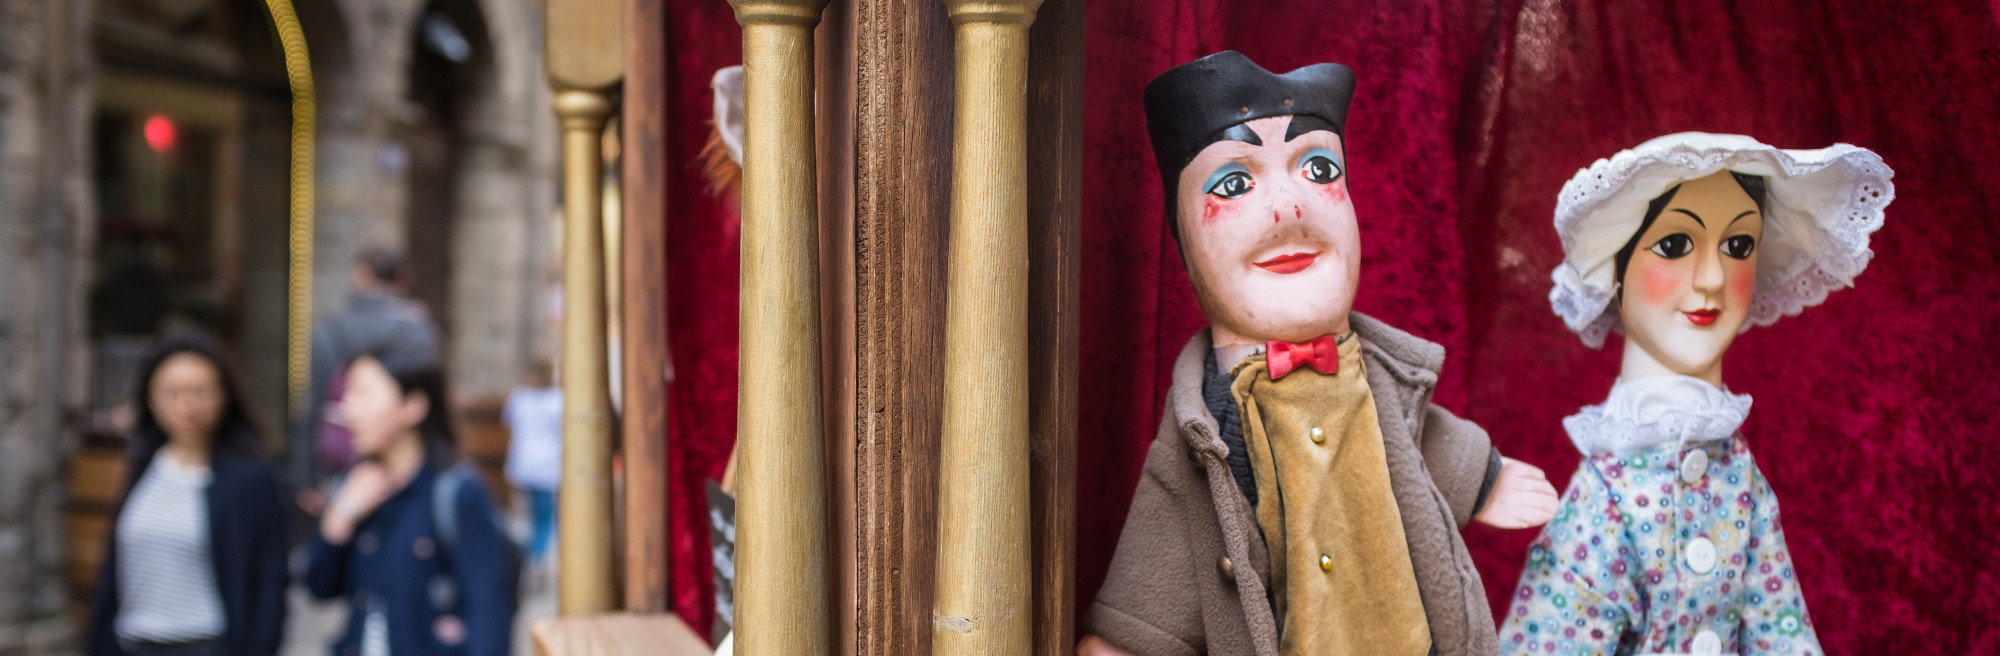 guignol puppet lyon review